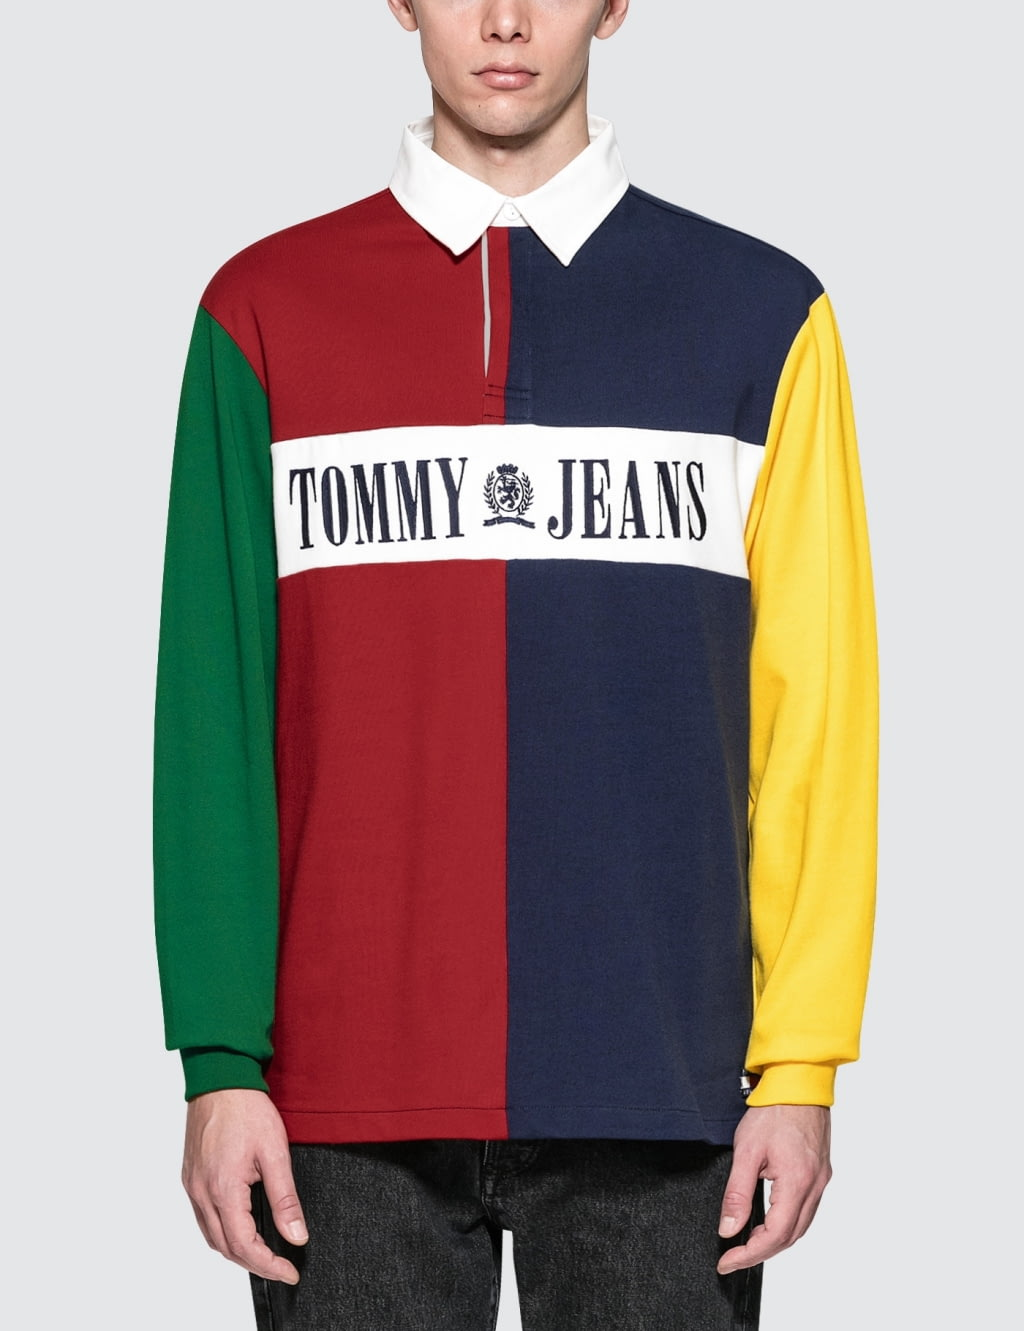 Buy Original Tommy Jeans 90s Colorblock Rugby Shirt at ...